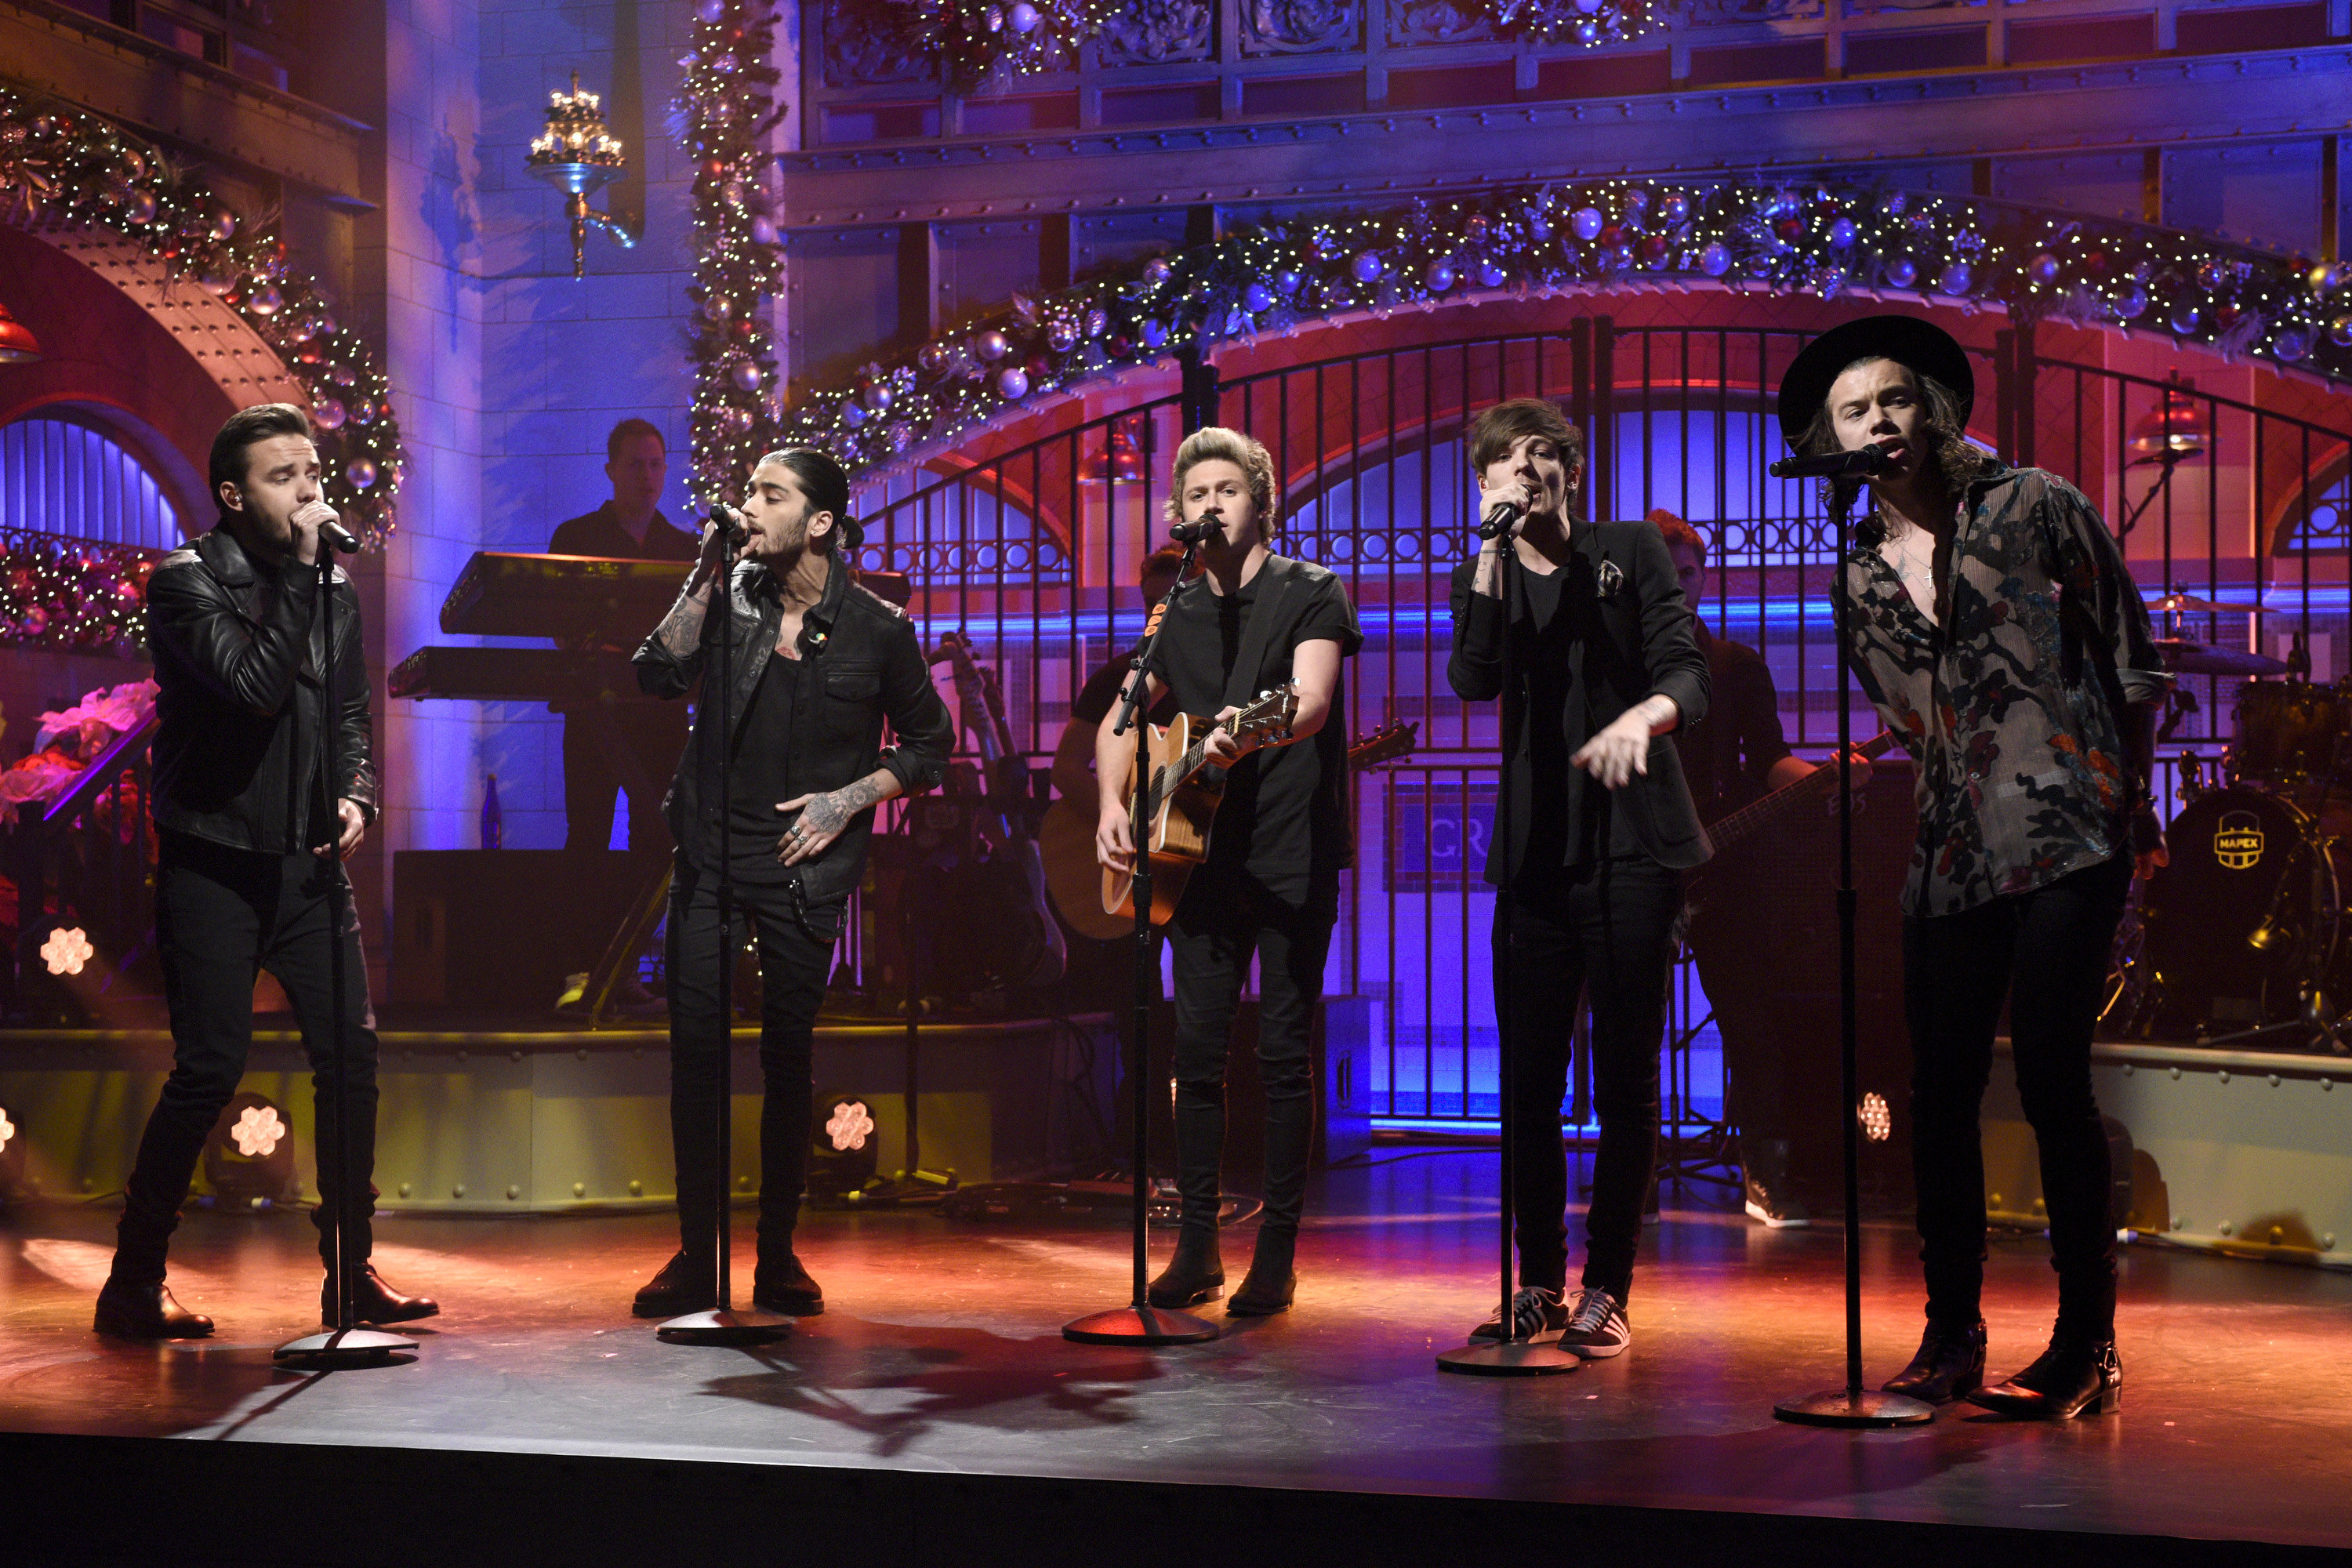 One Direction performing on Saturday Night Live in 2014